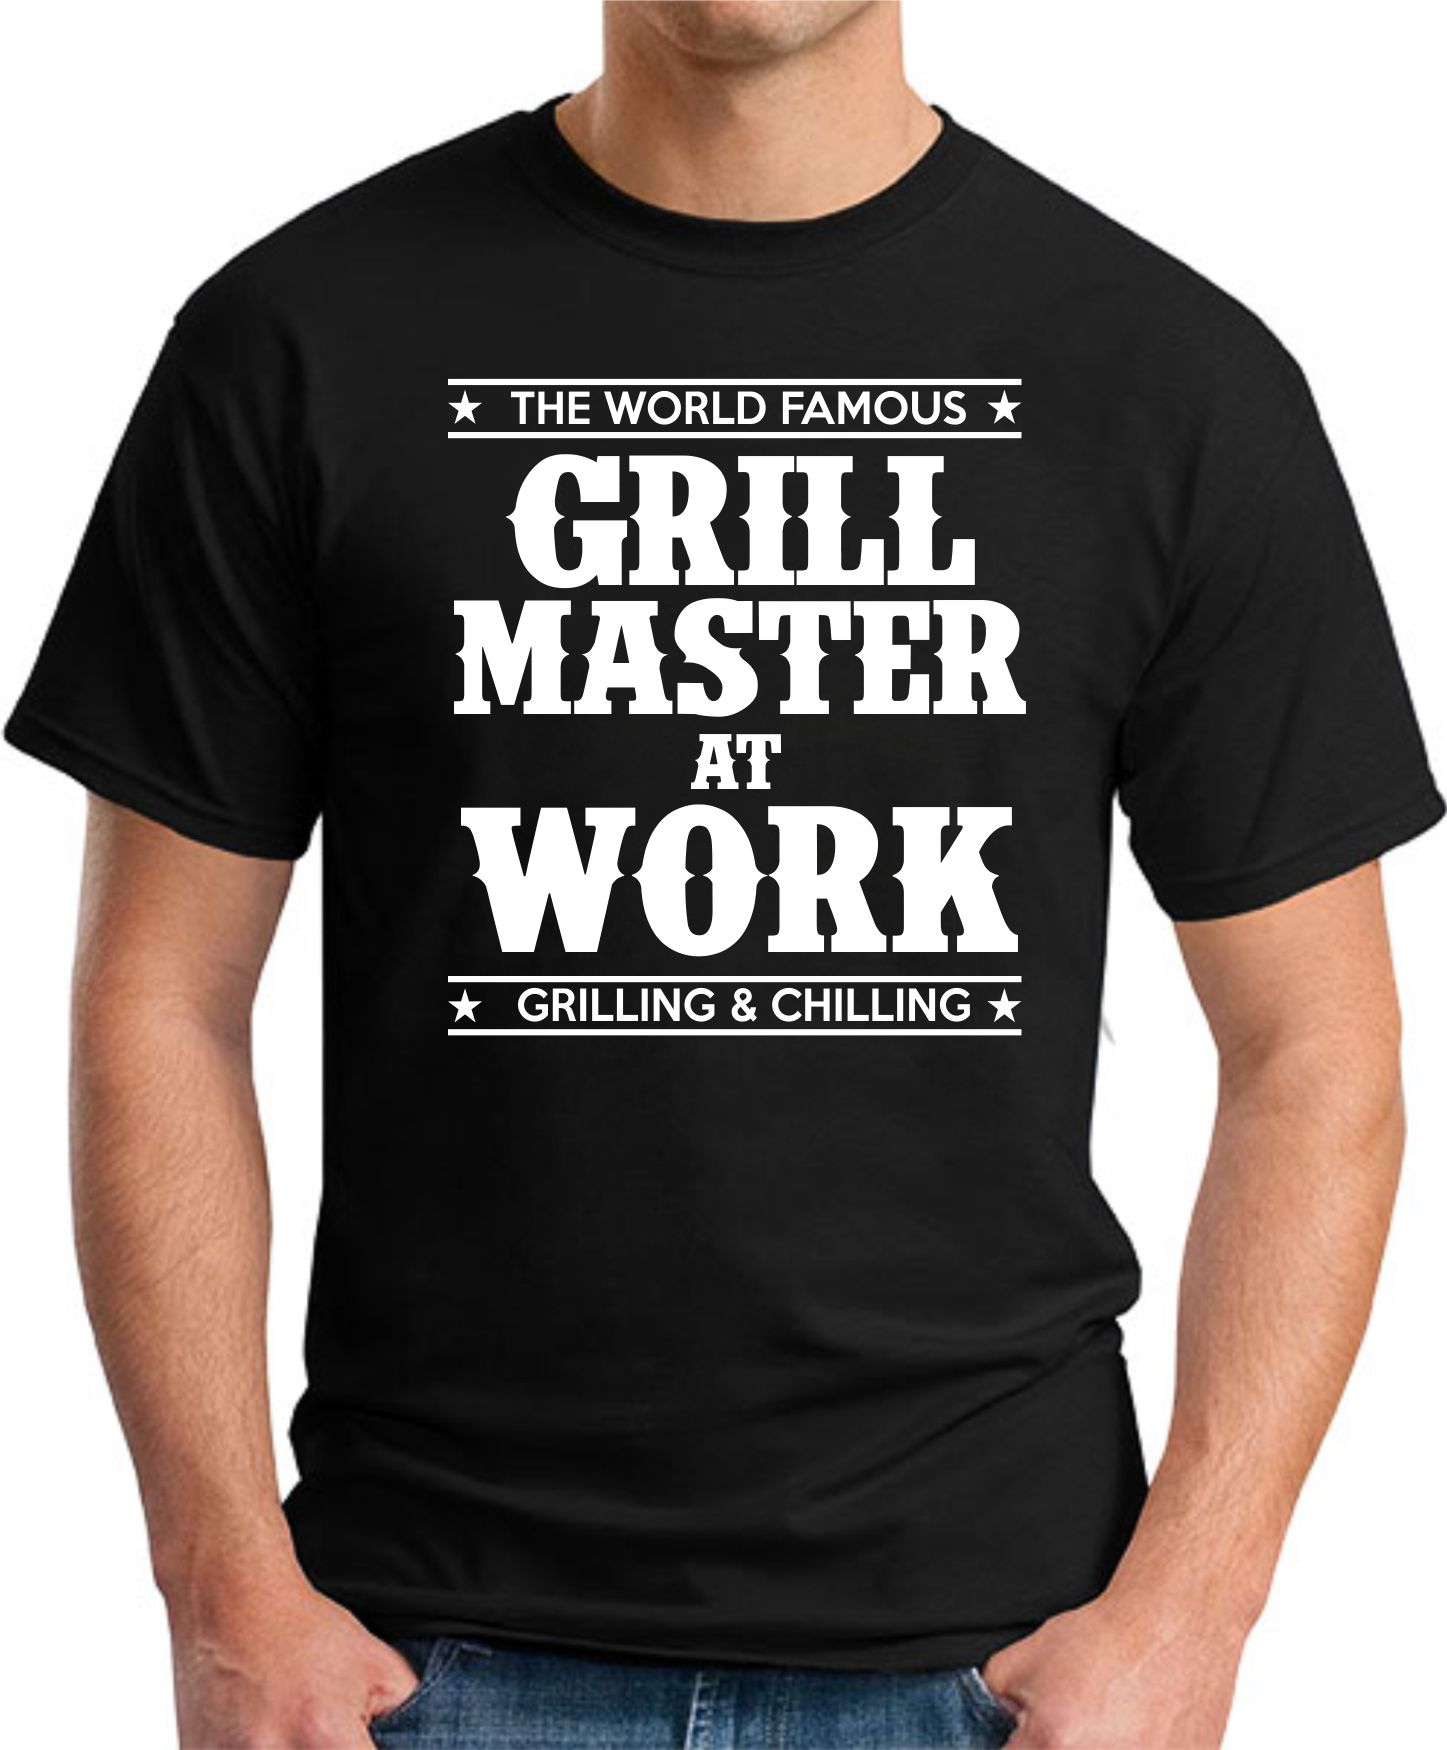 GRILL MASTER AT WORK black